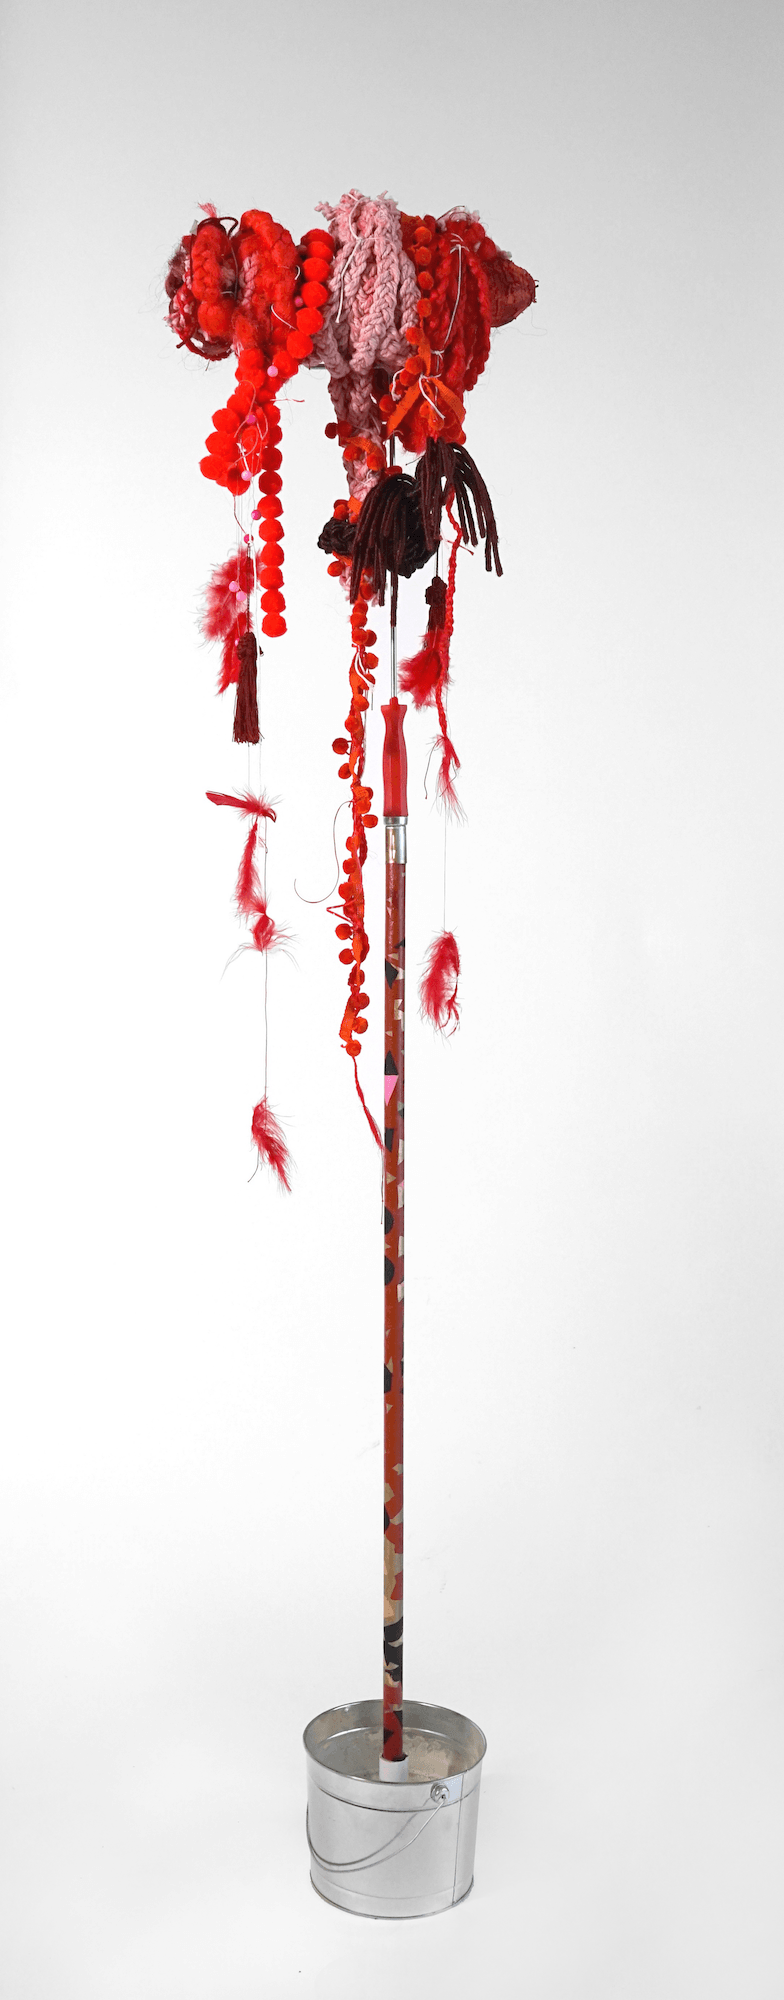 """""""Mop 3"""", from the Series Whips, Whims and Wigs, 2019, Transformed mop head into a hairdo on  decorated stick, various materials"""